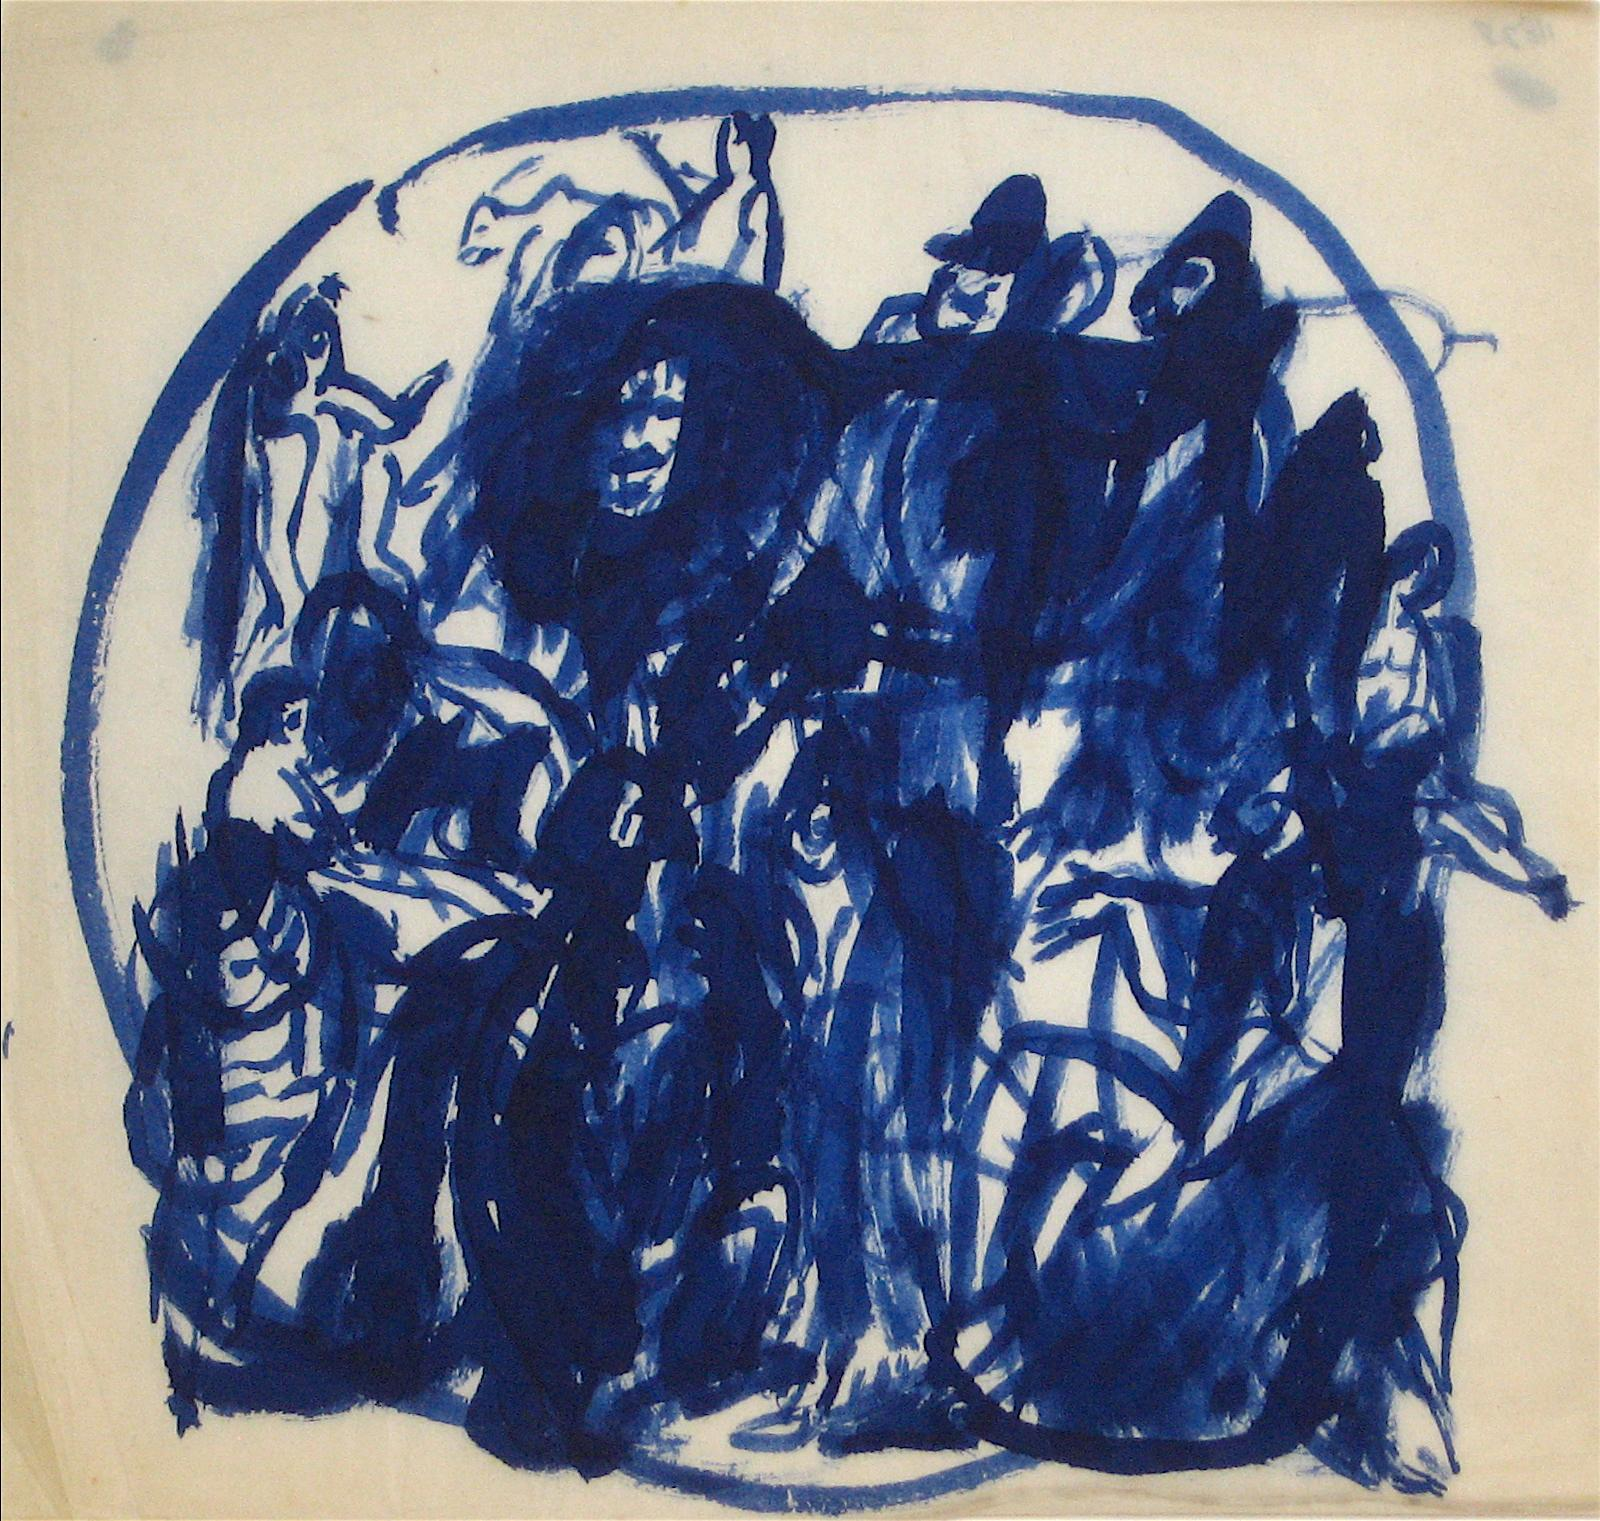 Blue Figures in a Circle Early-Mid 20th Century Ink Wash